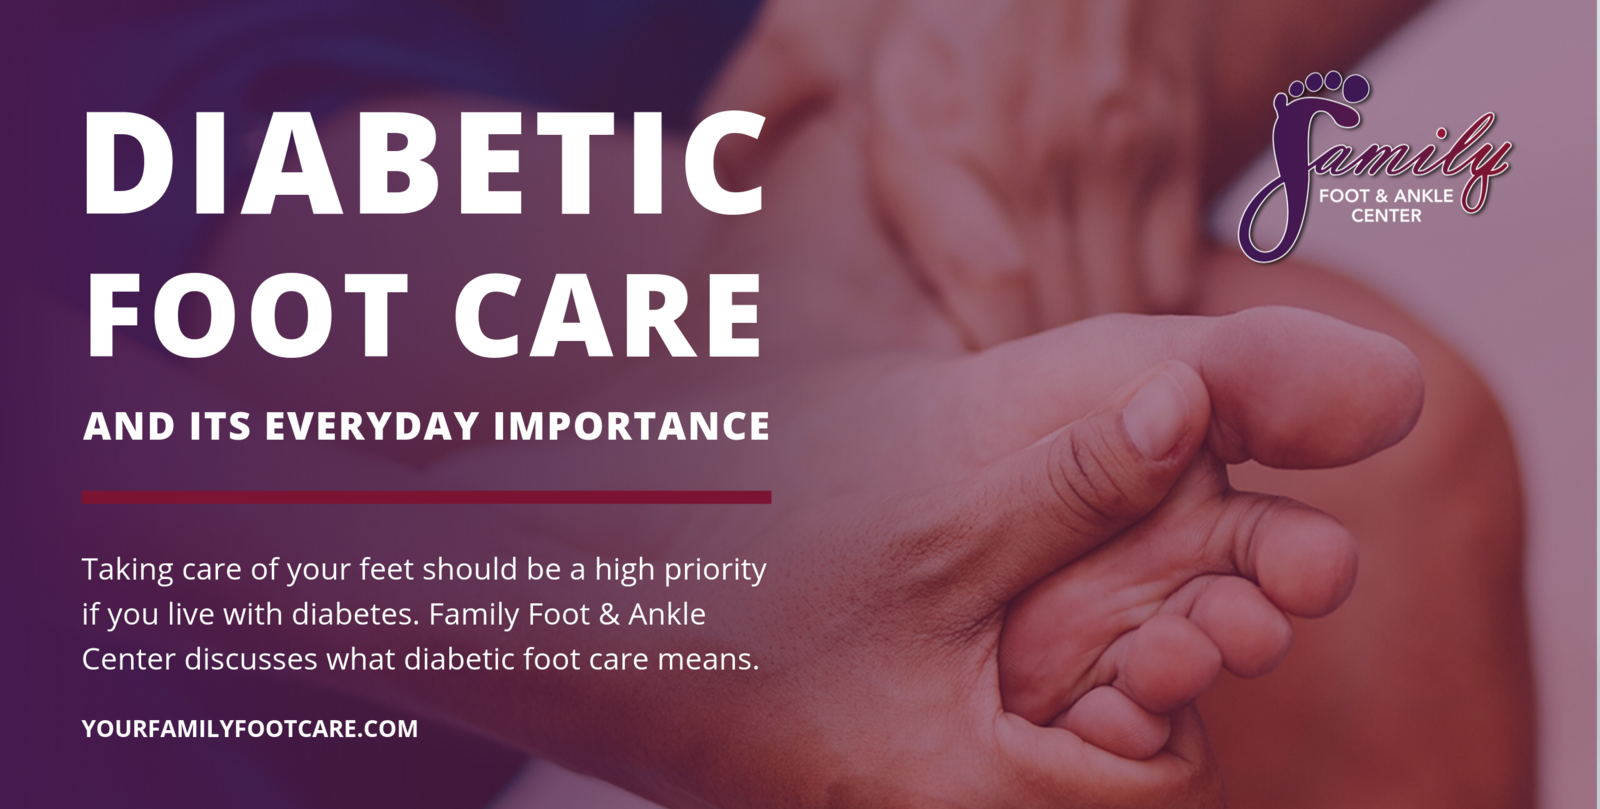 Why Diabetic Foot Care Is Of Everyday Importance Family Foot Ankle